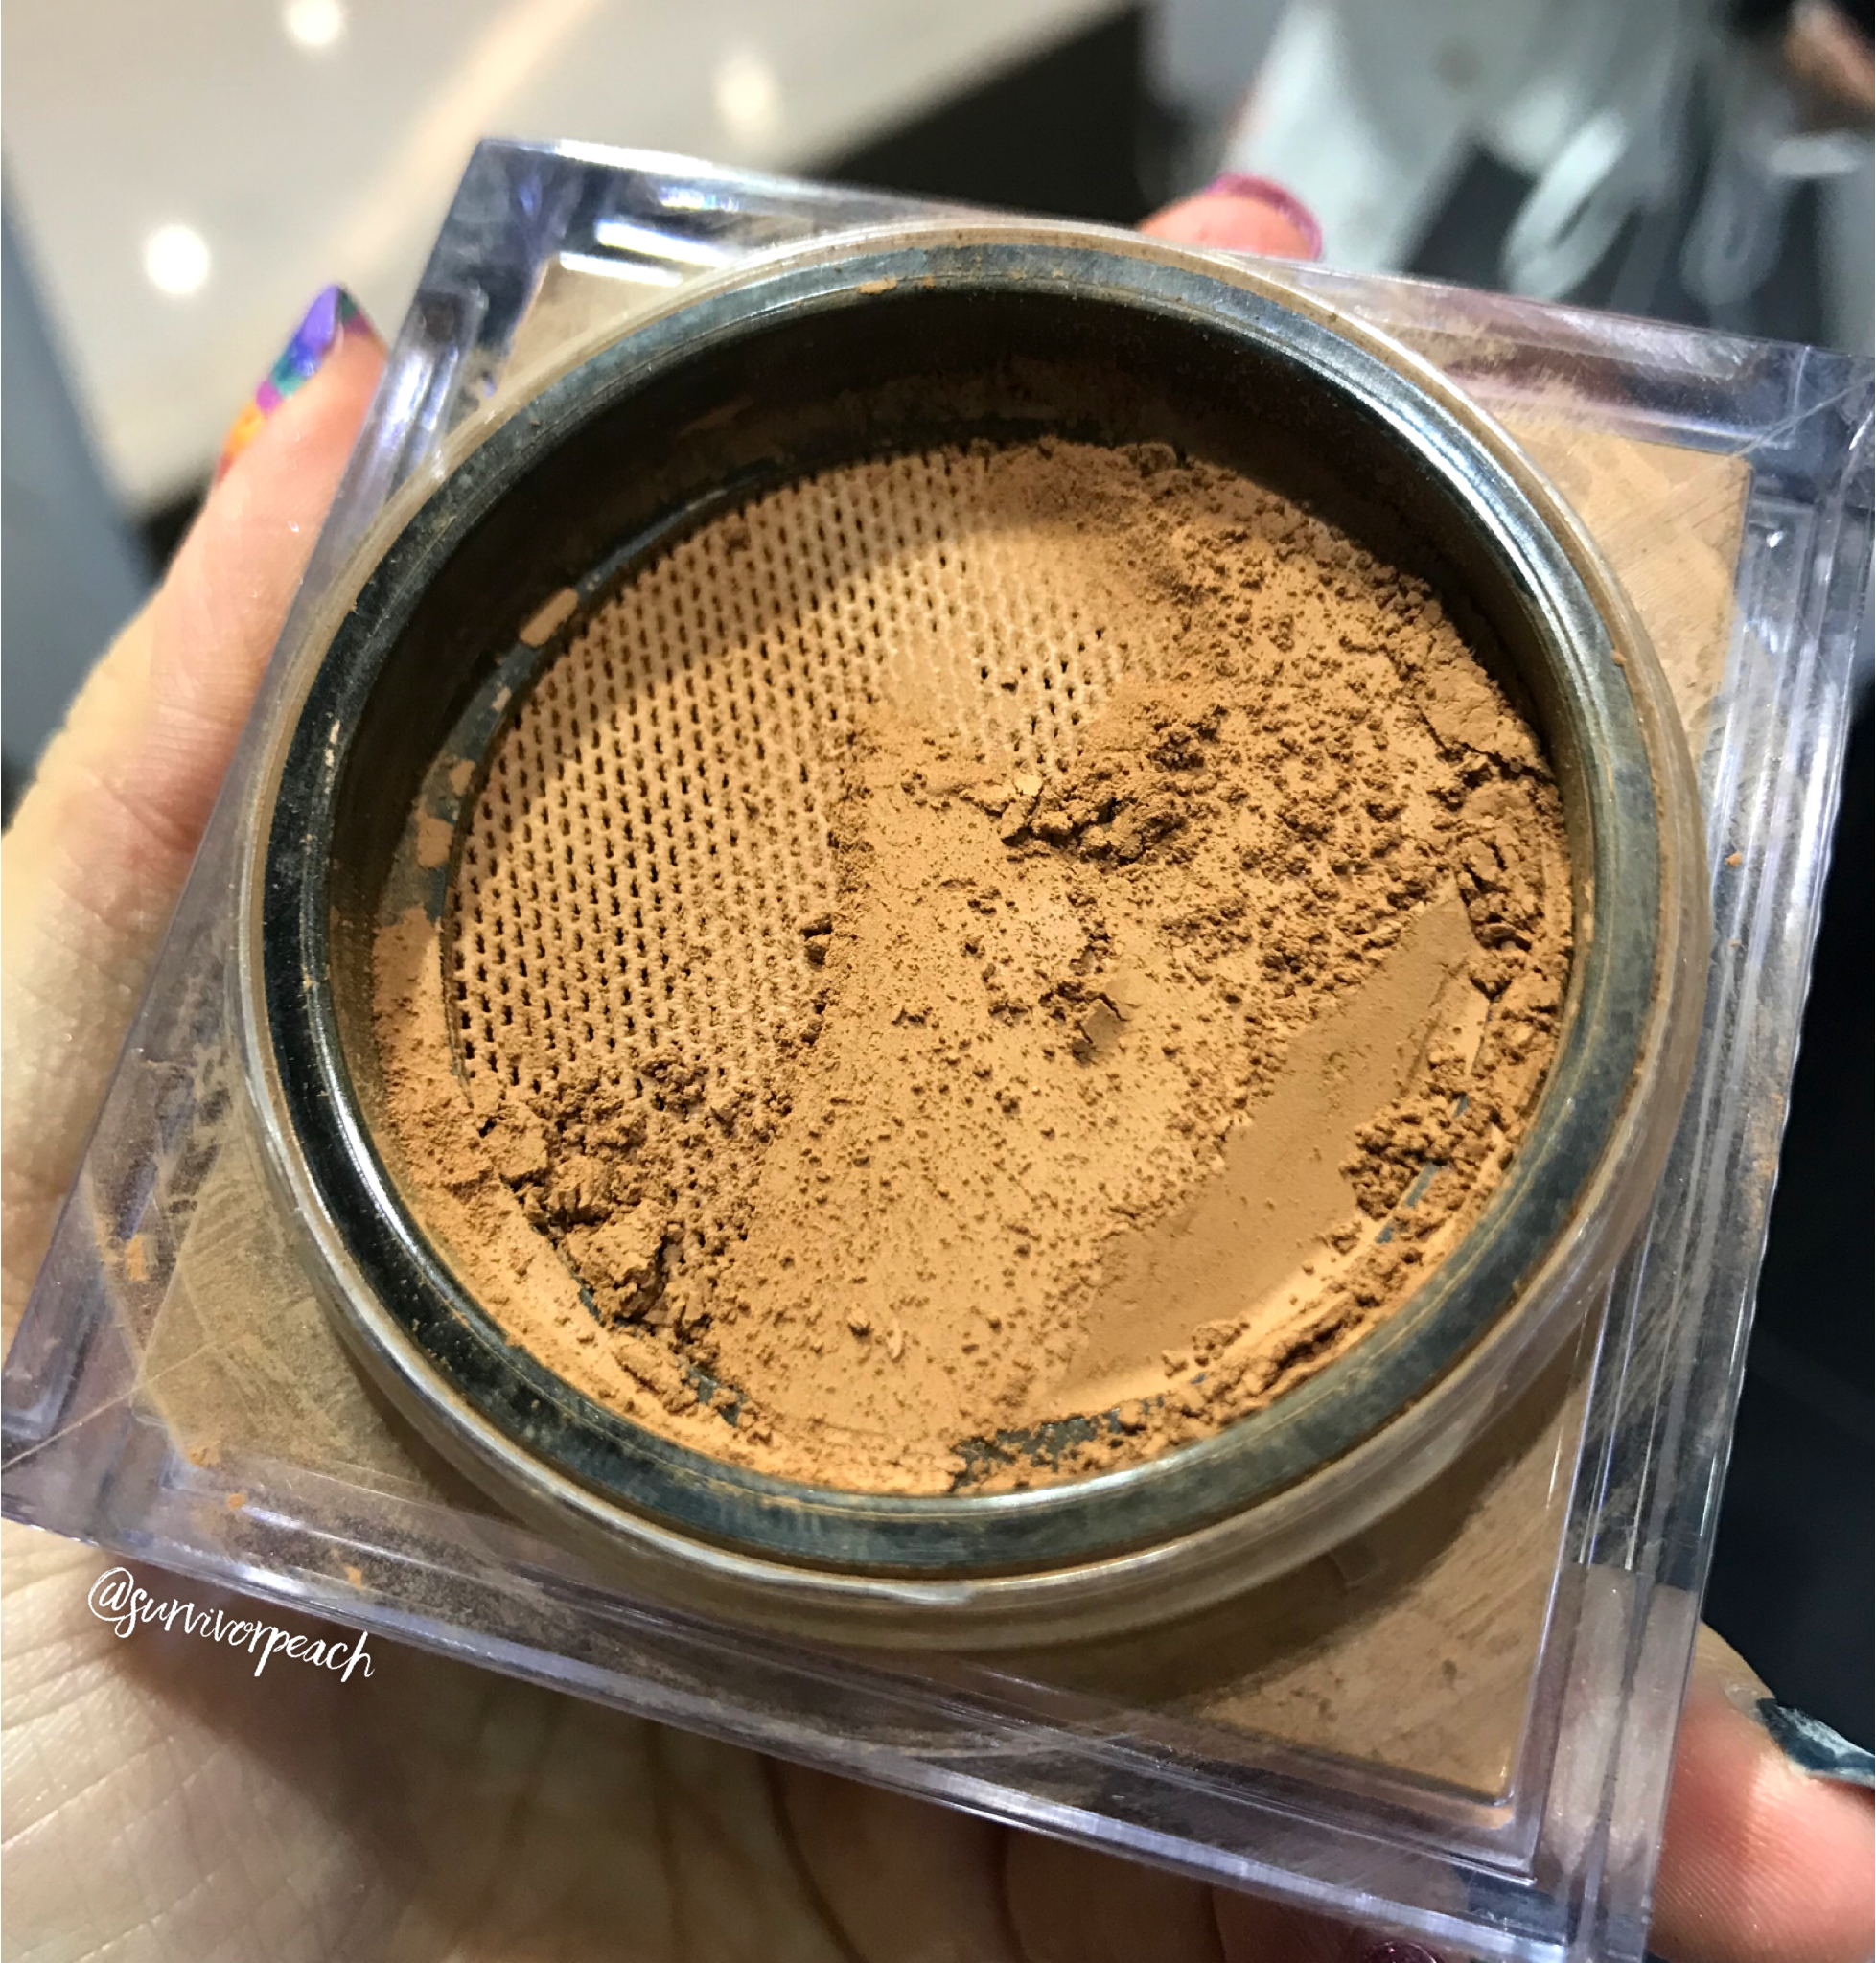 Huda Beauty Easy Bake Powder - Coffee Cake